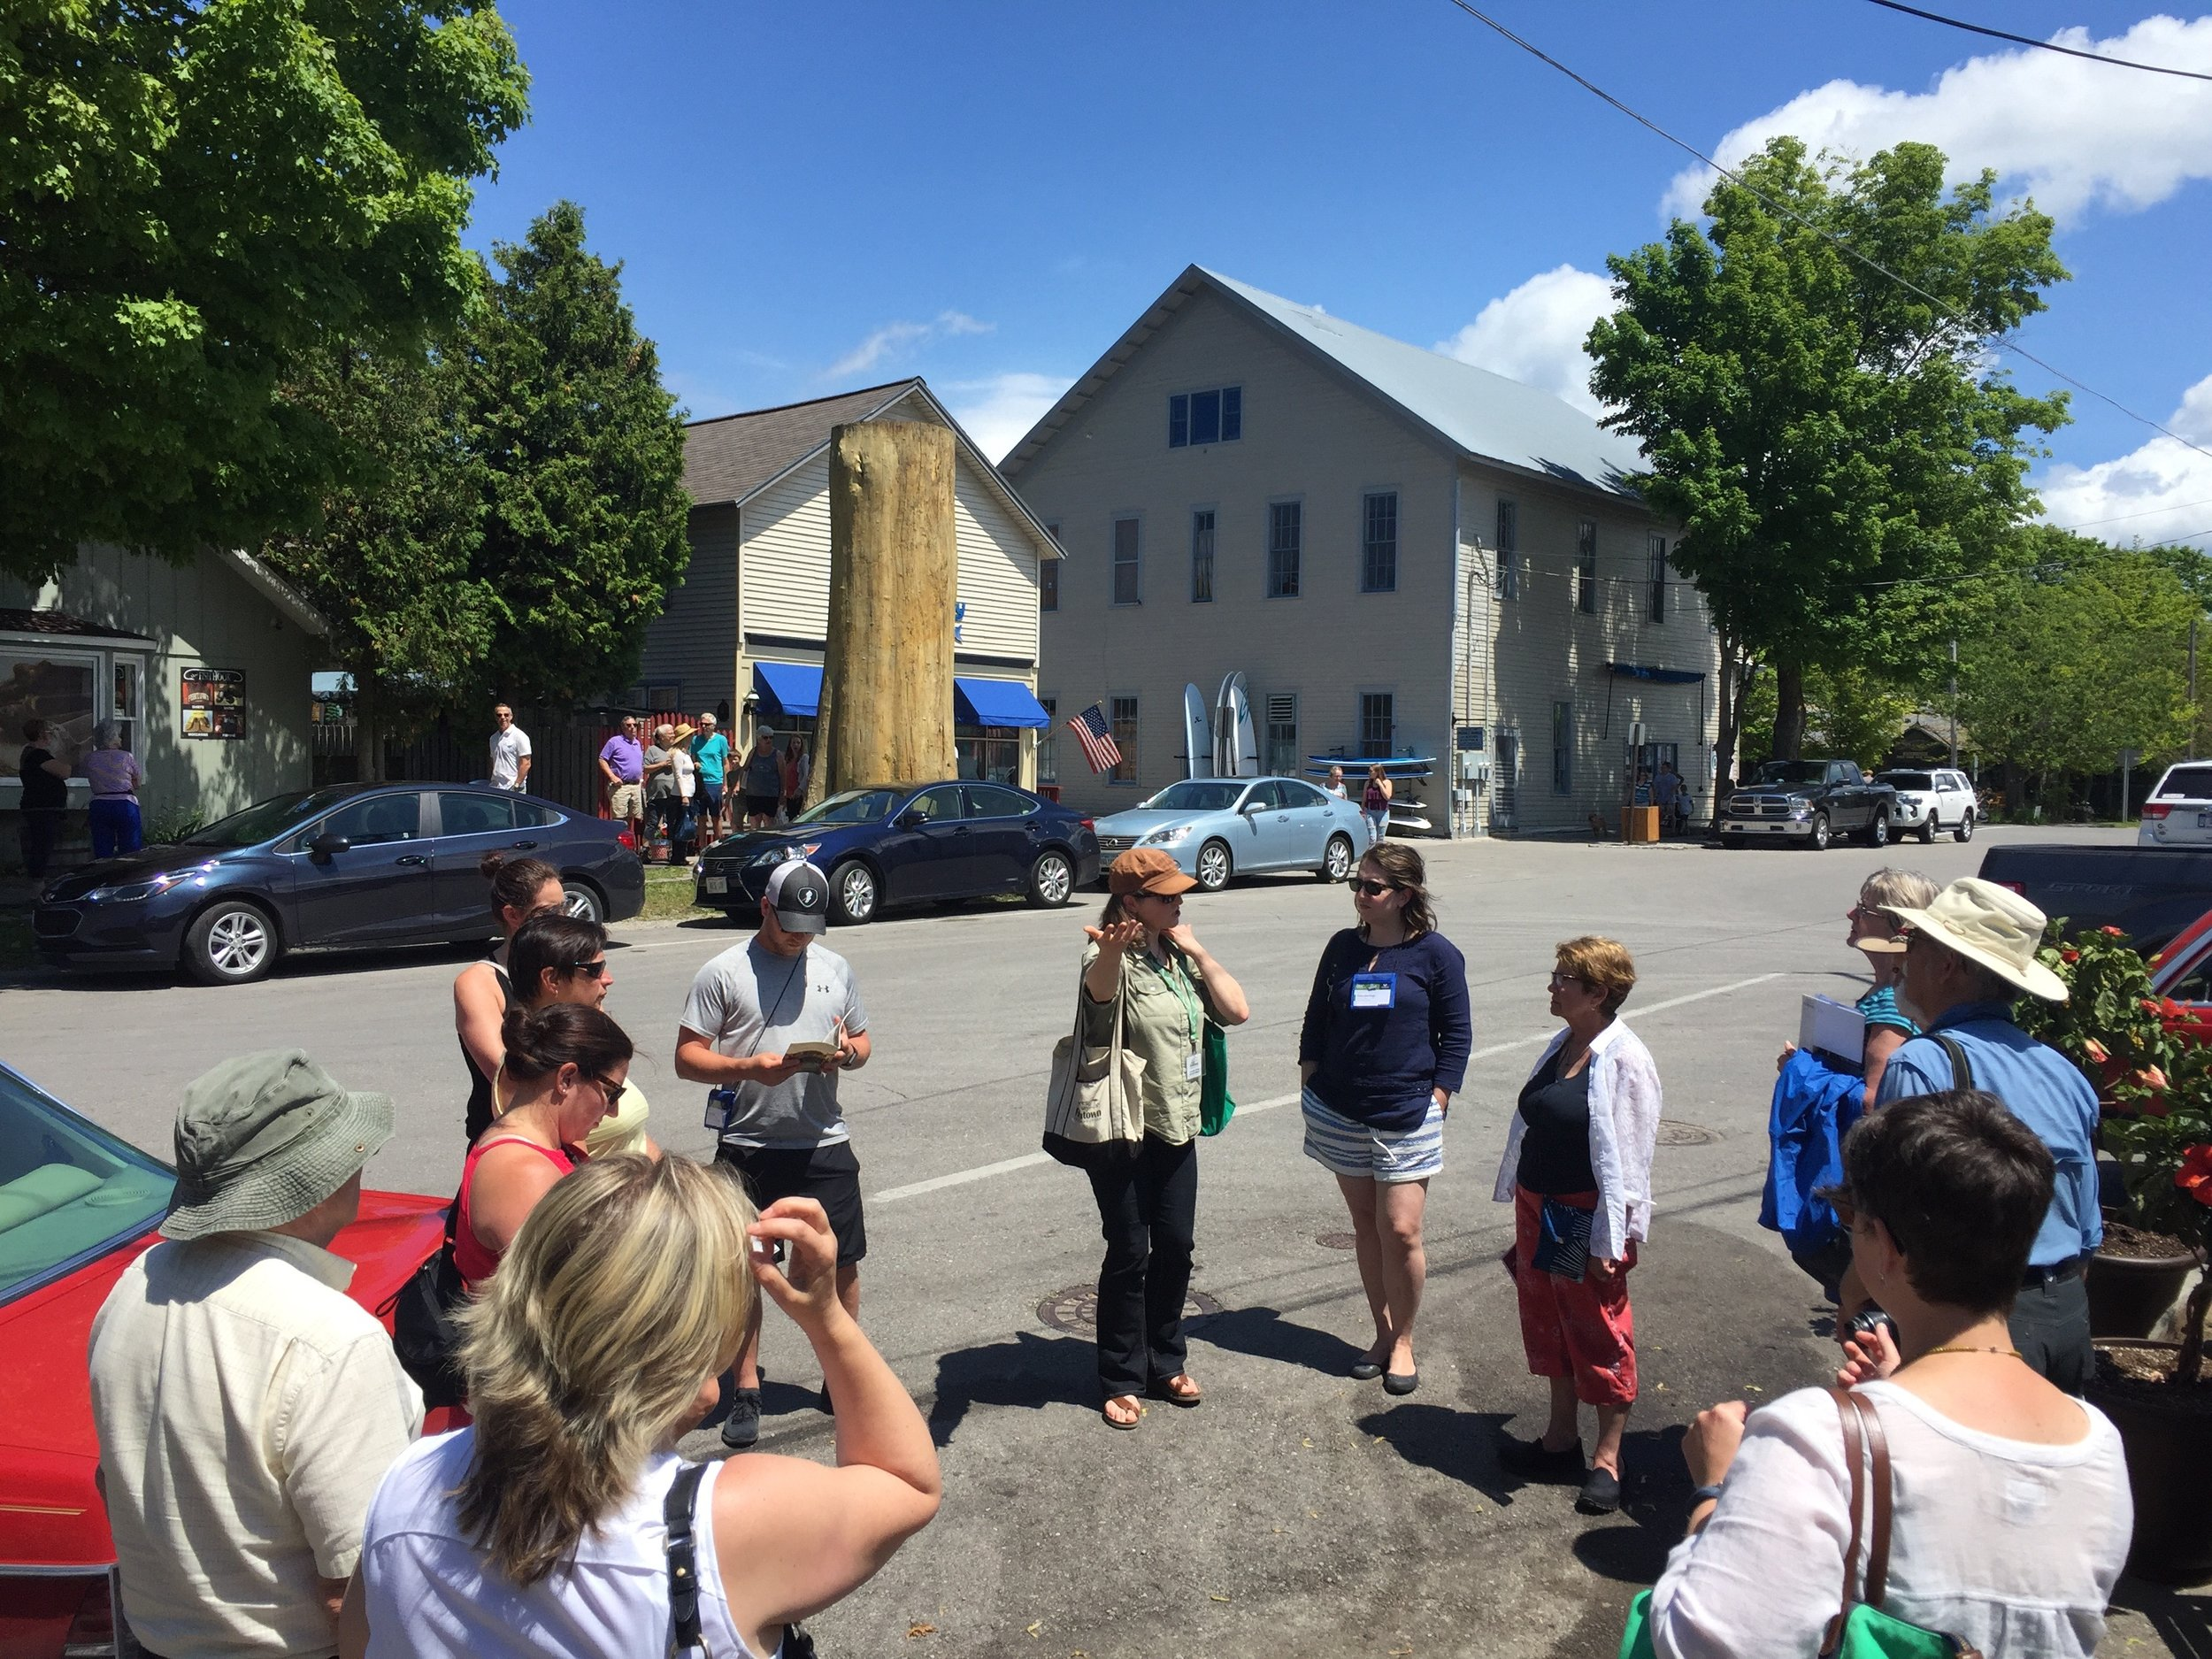 In Leland, MI, the group learns from the Amanda Holmes, Executive Director of  Fishtown Preservation , a non-profit group dedicated to preserving the built and natural assets of this unique harbor community.